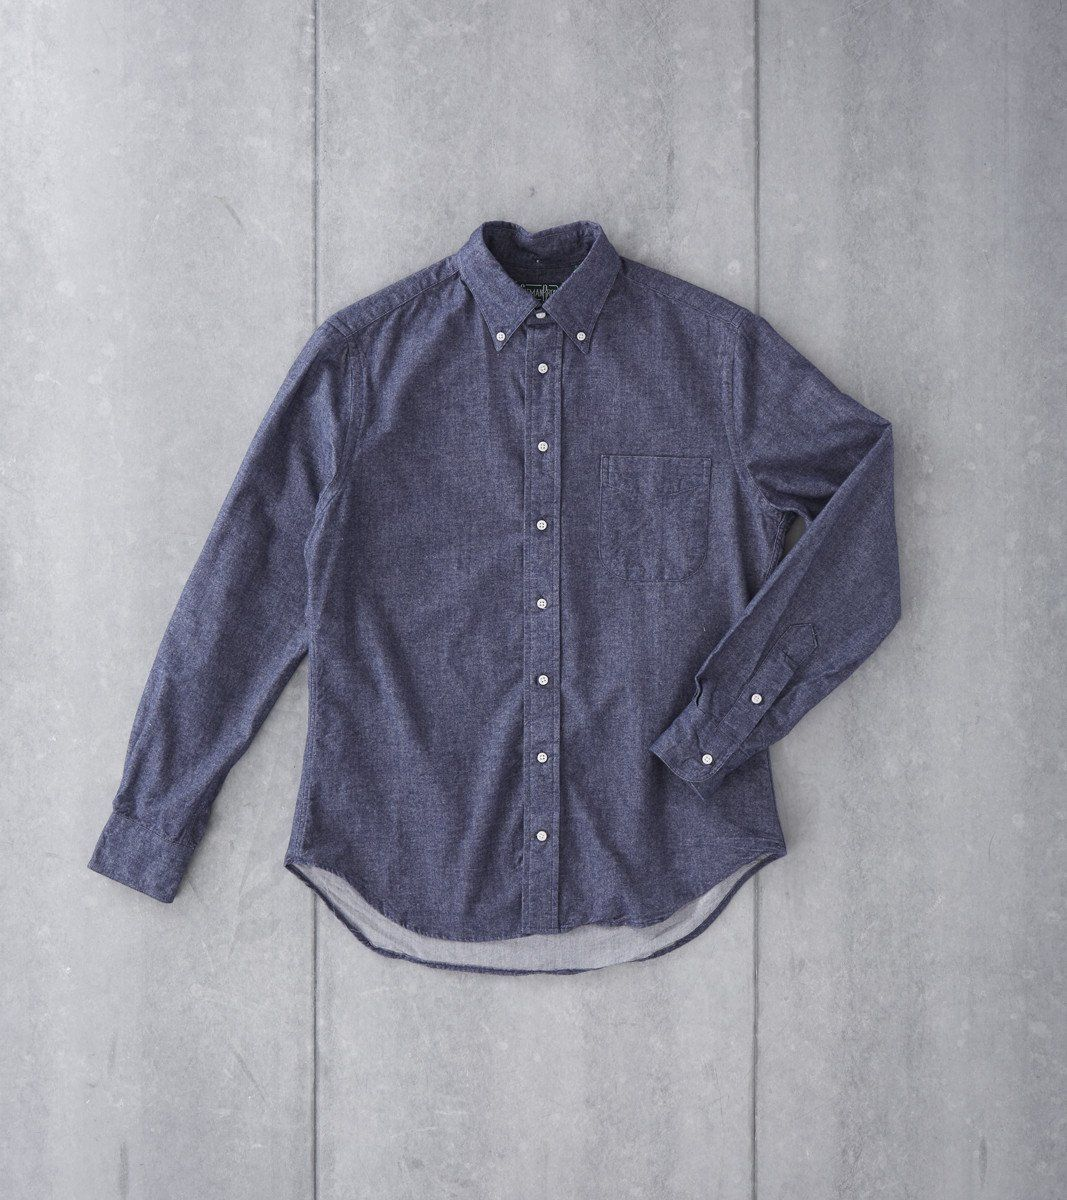 ab7b574a1c Gitman Vintage Japanese Chambray Flannel Navy Division Road Shirt ...